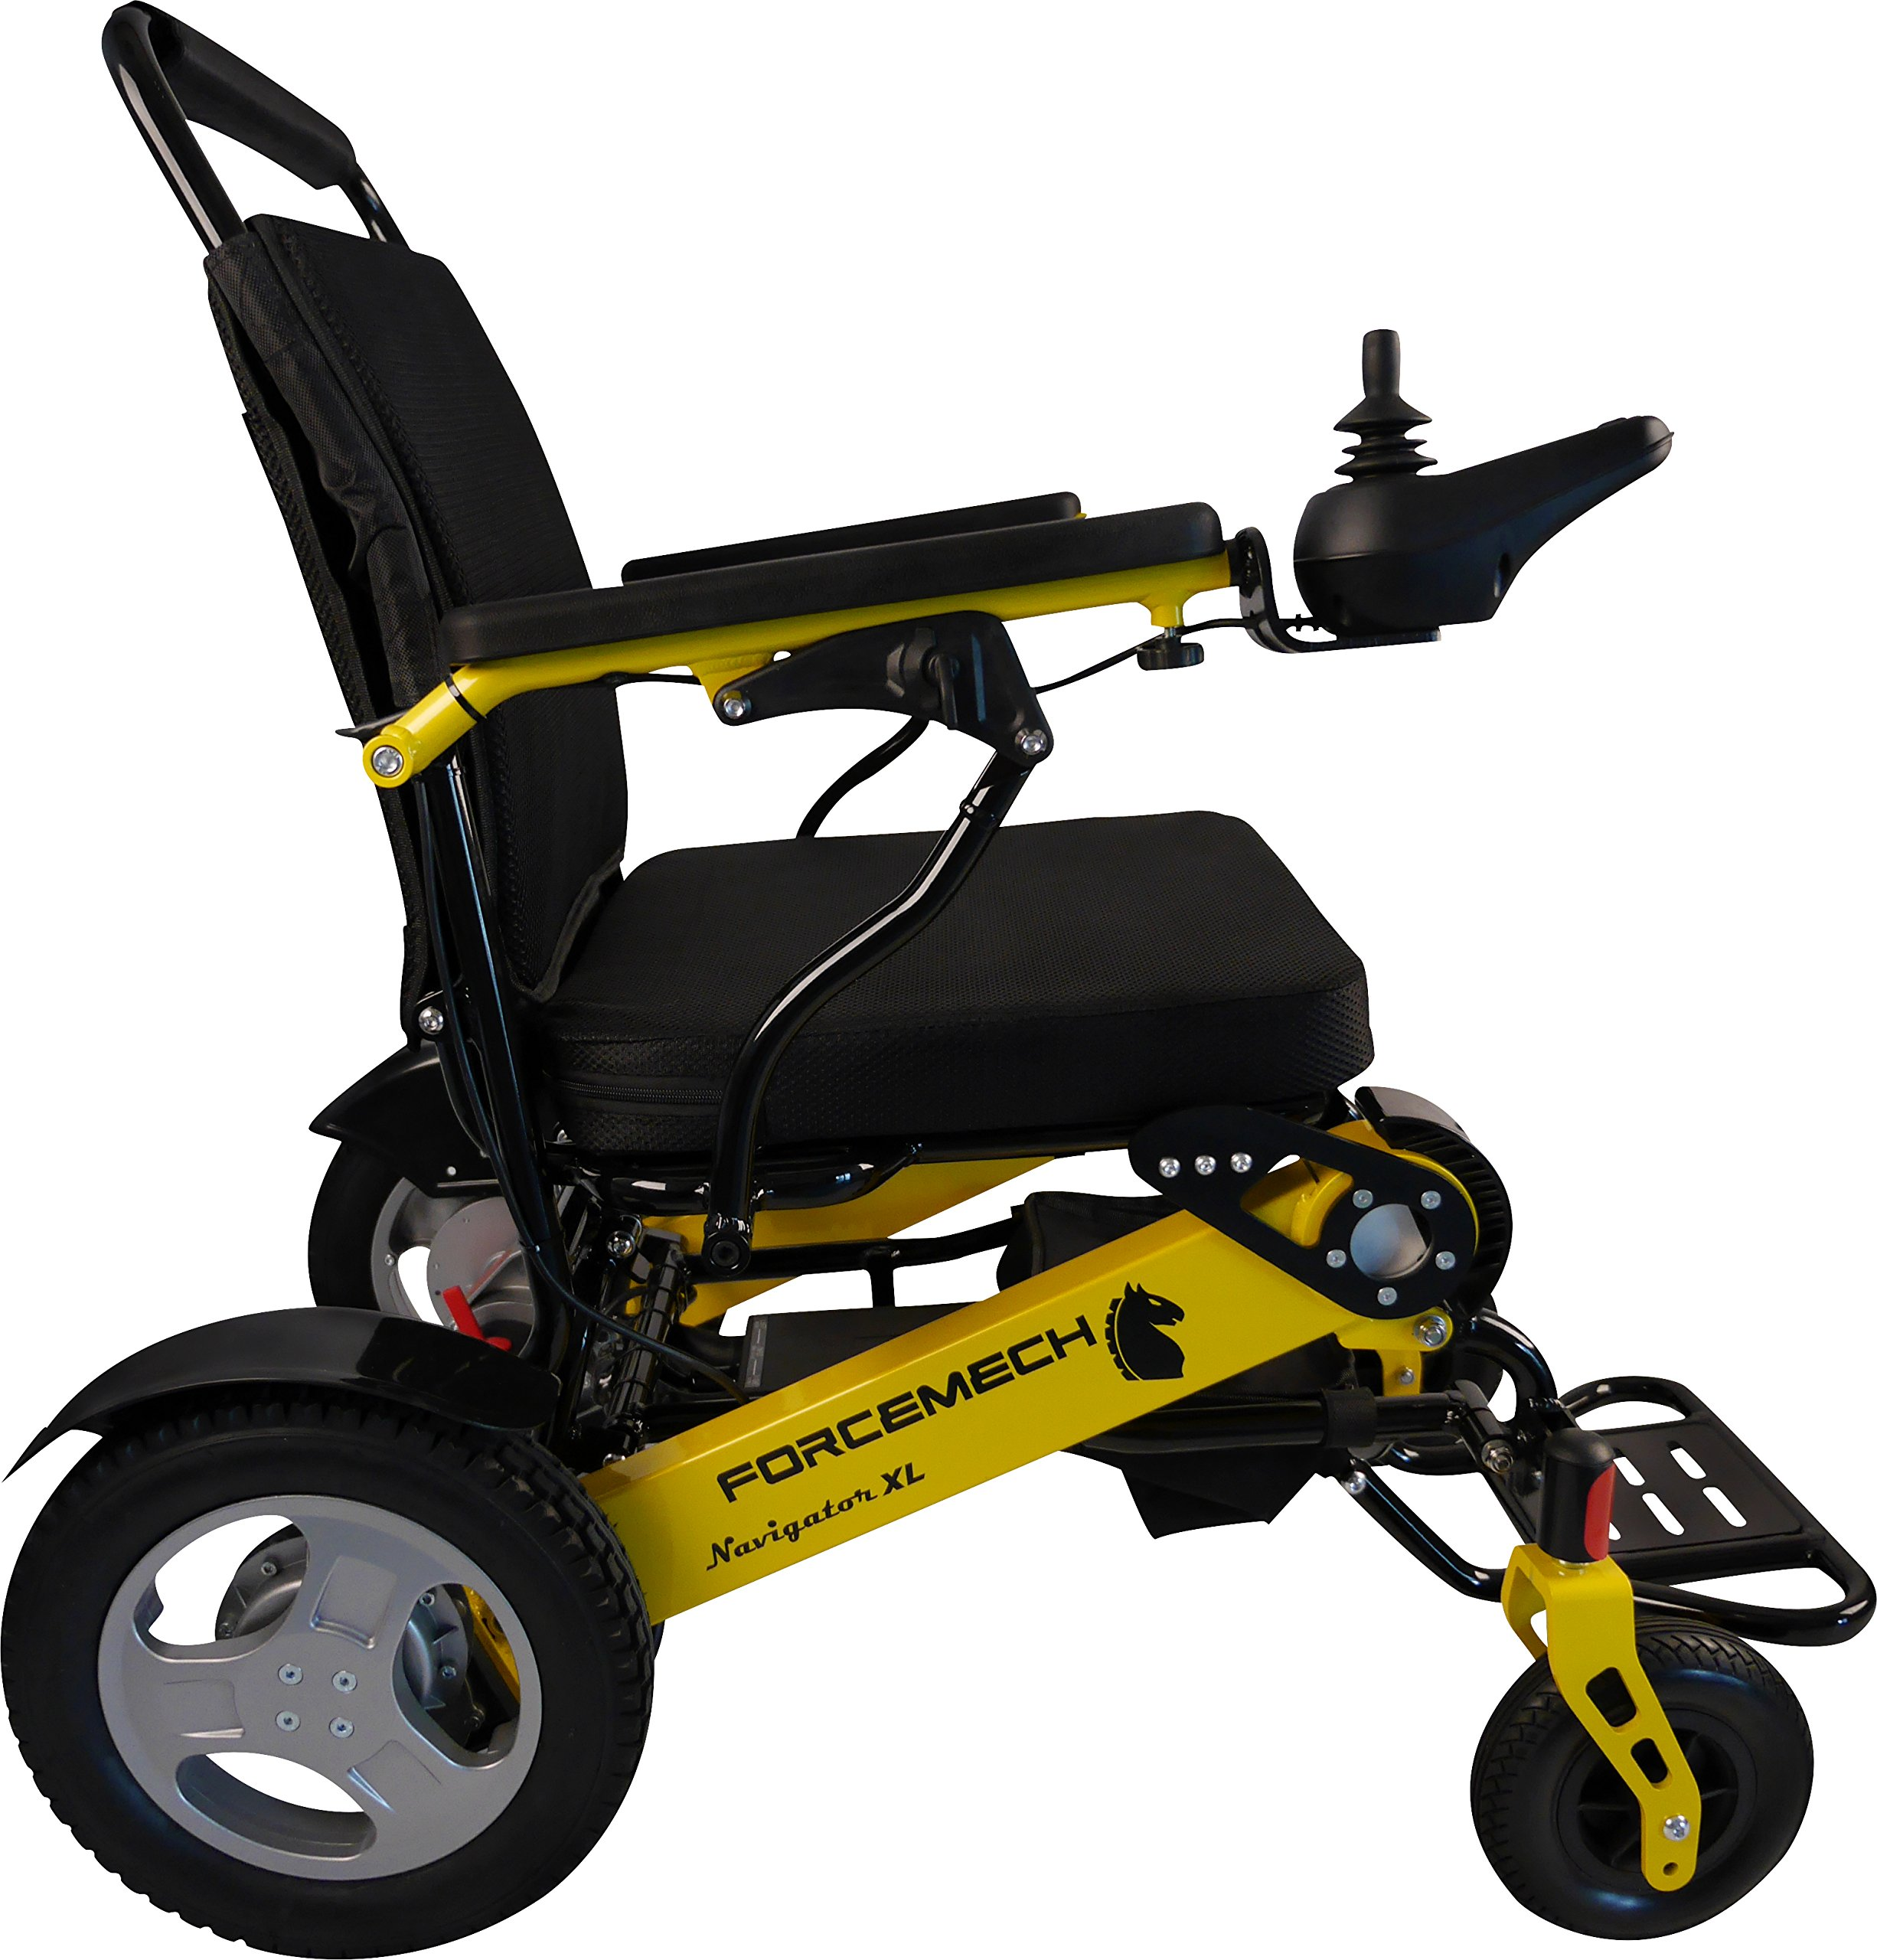 Forcemech Power Wheelchair - Navigator XL, Electric Folding Mobility Aid by Forcemech